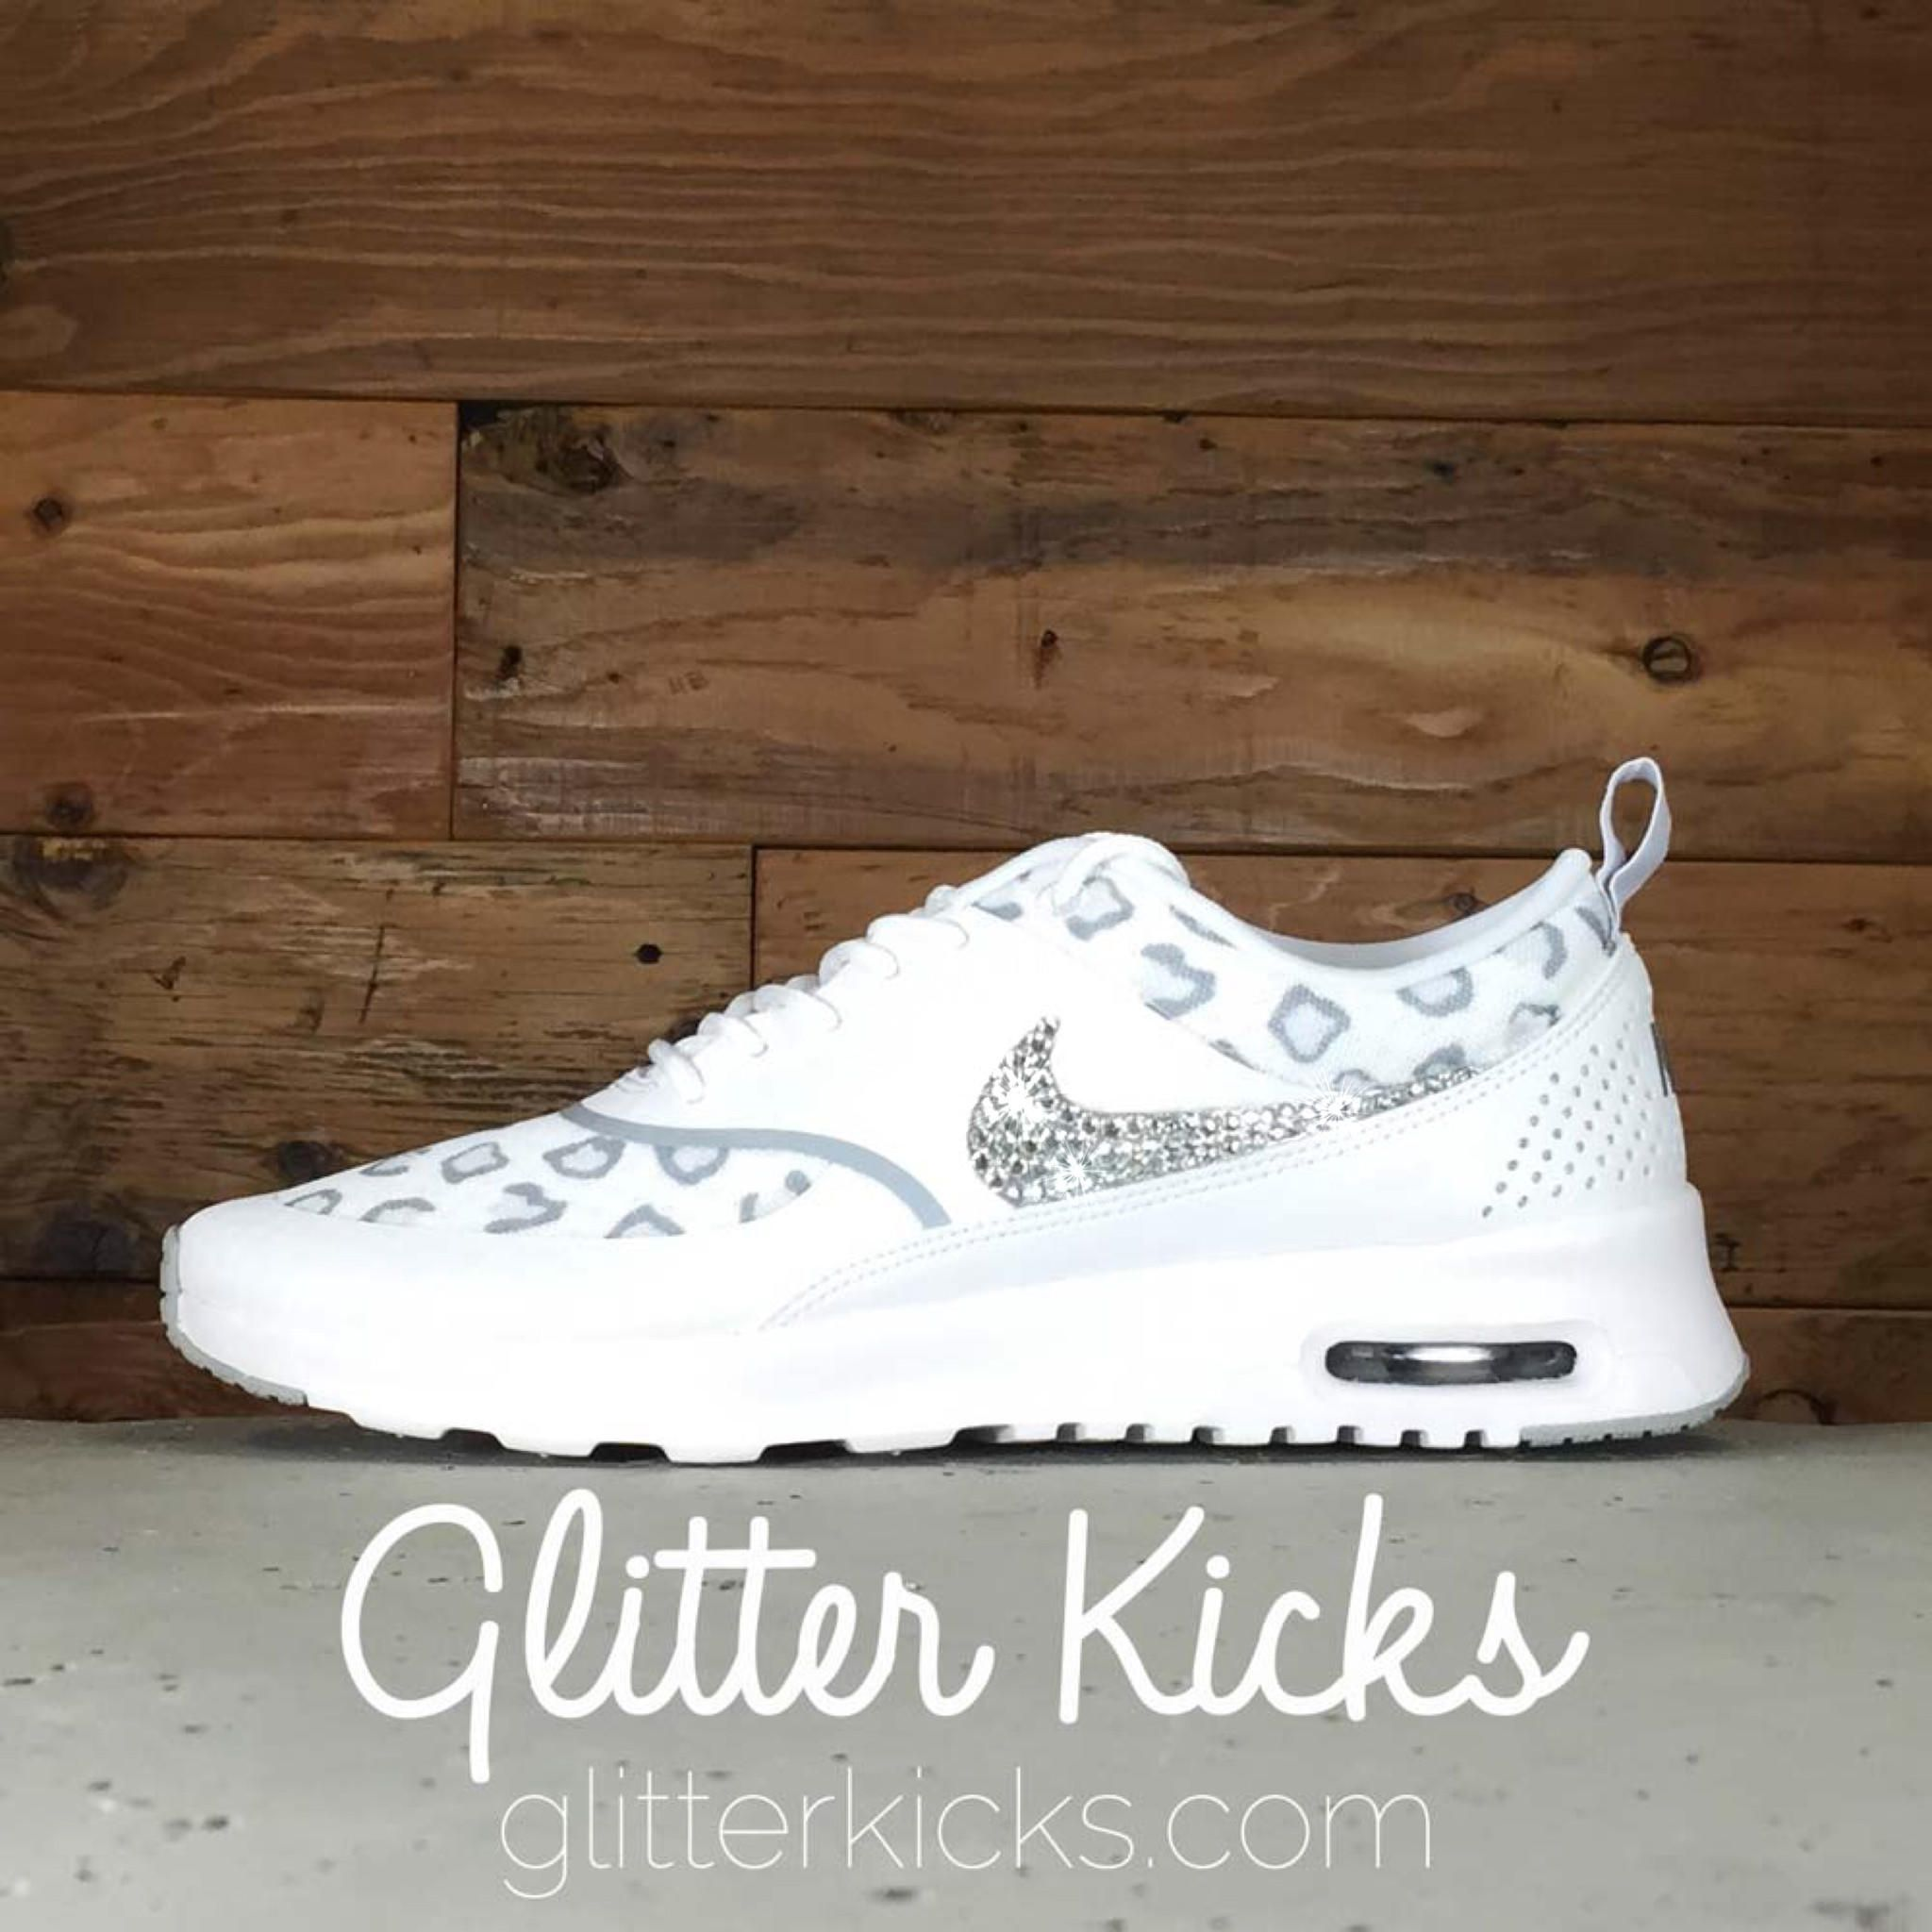 Nike Air Max Thea Print Running Shoes By Glitter Kicks - Customized With  Swarovski Crystal Rhinestones - White Gray Platinum Leopard Print eaddfd9f9405